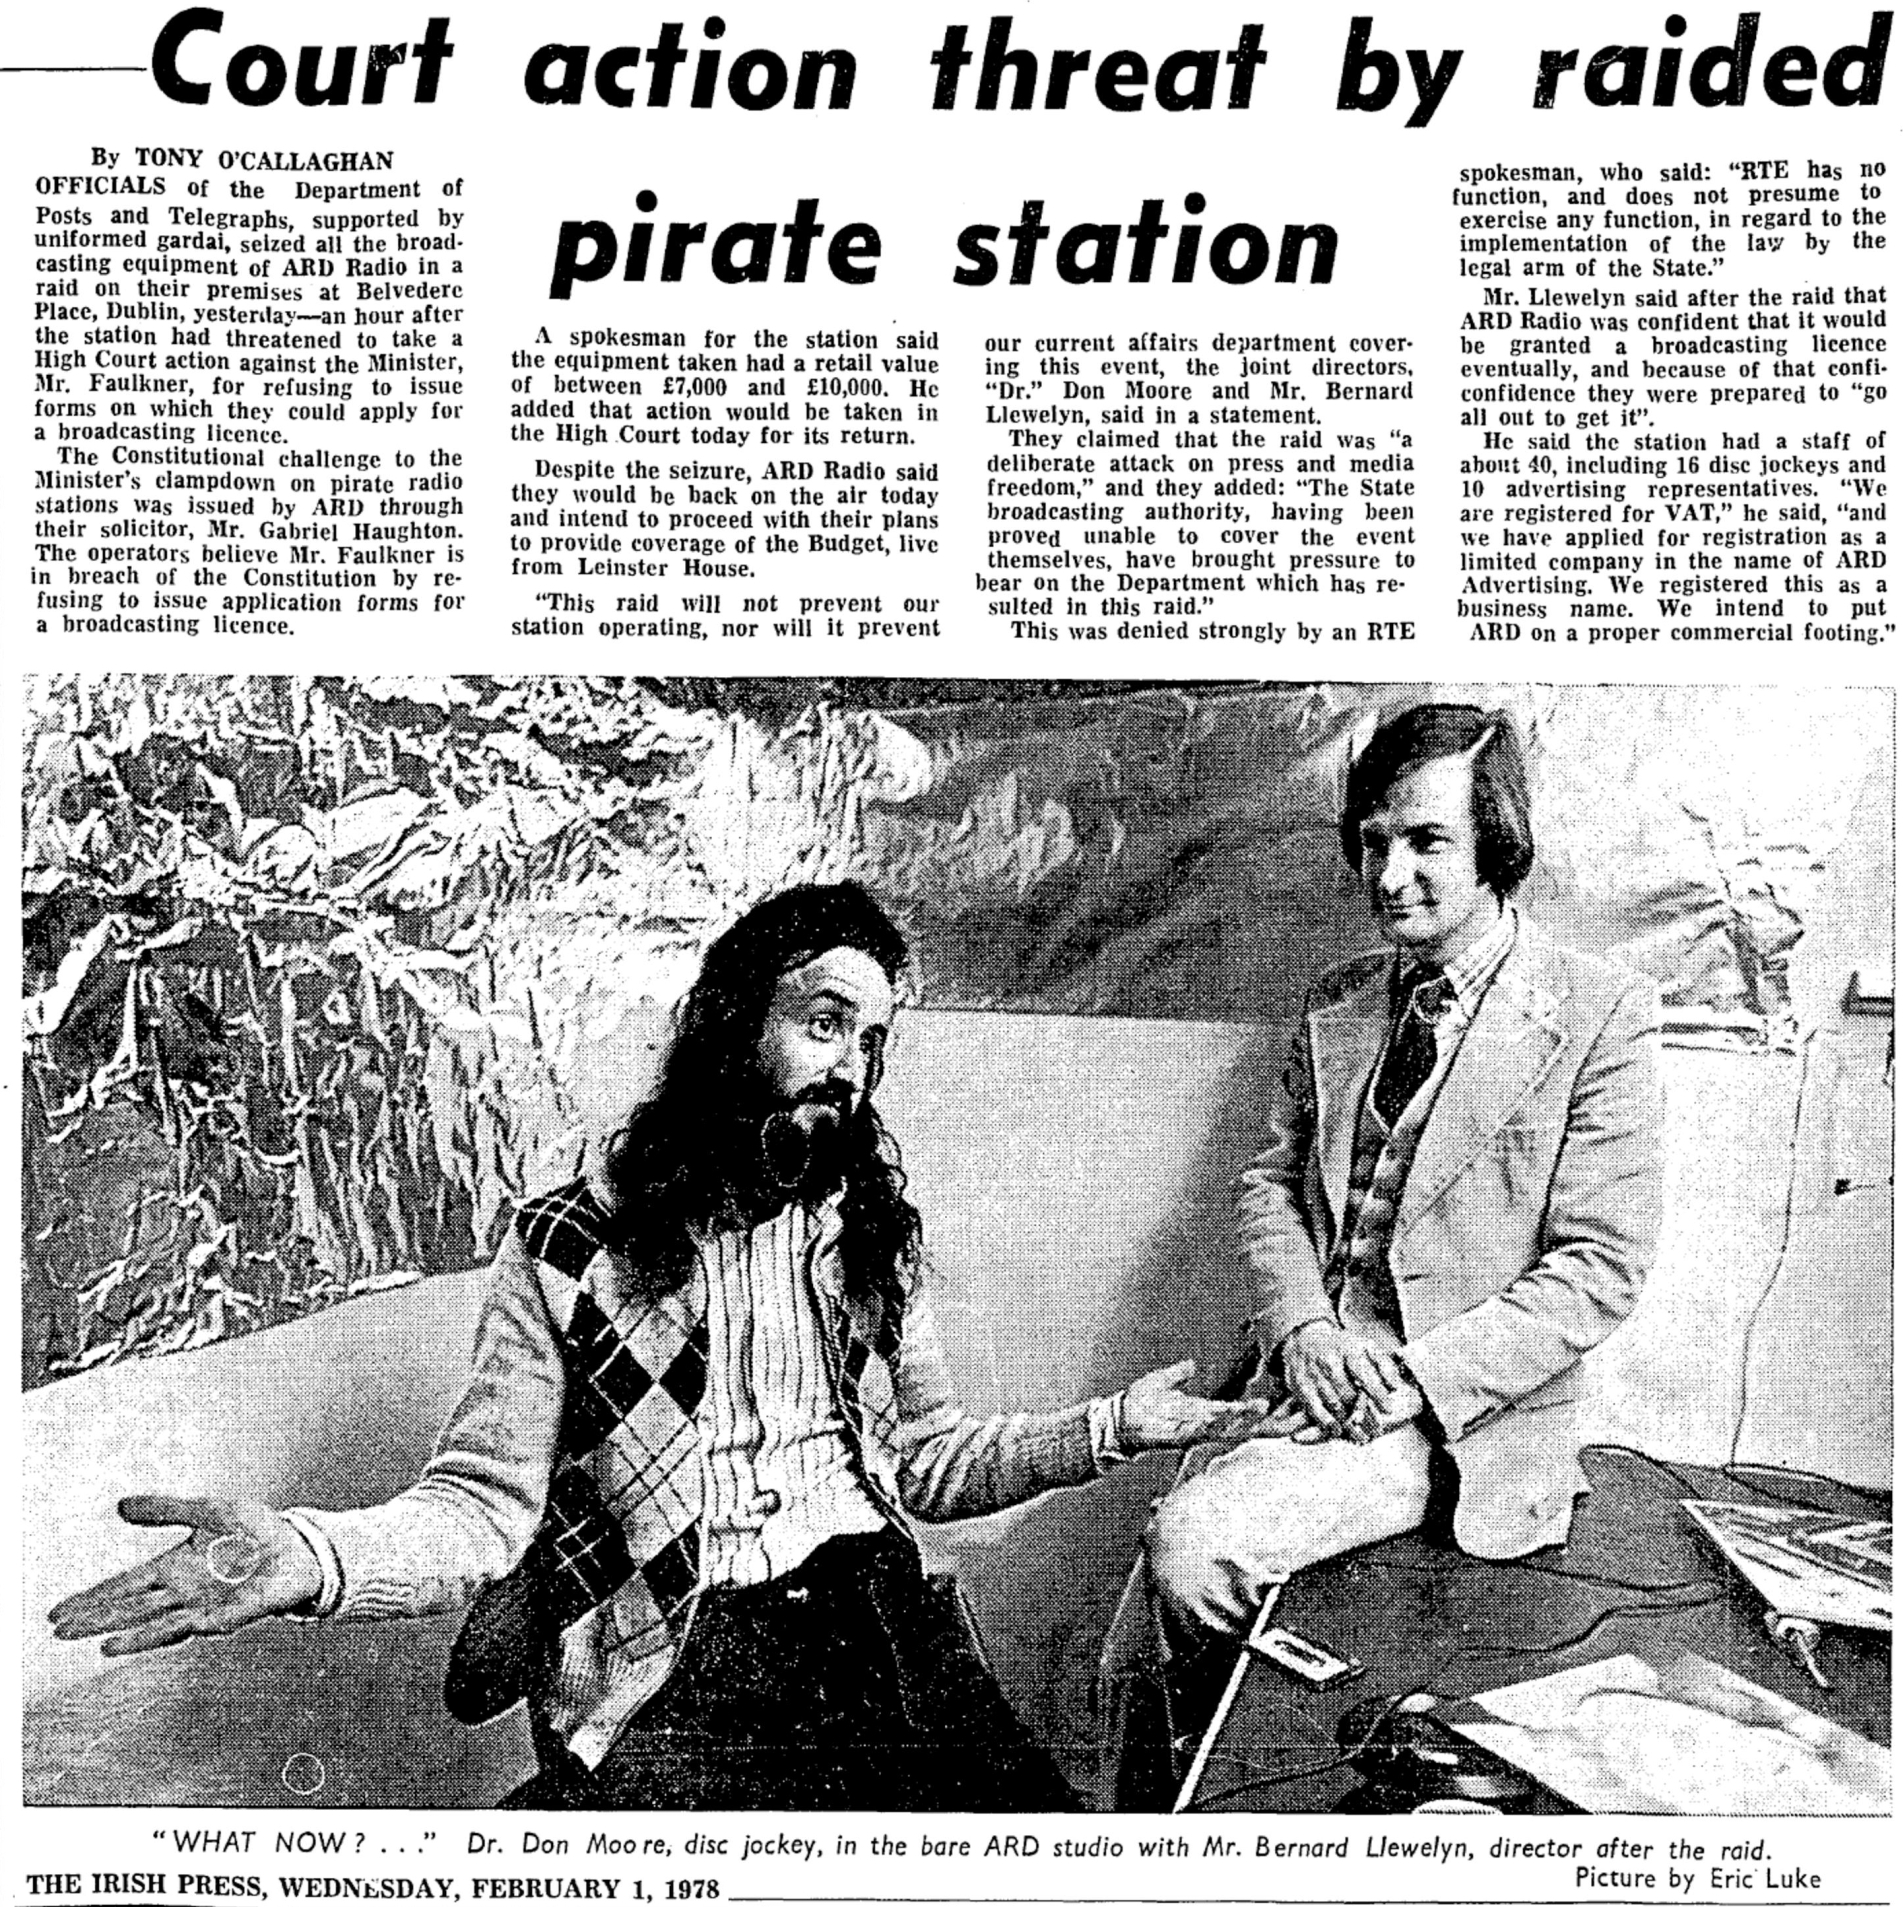 Court action threat by raided pirate station was a newspaper headline from The Irish Press dated February 1st 1978